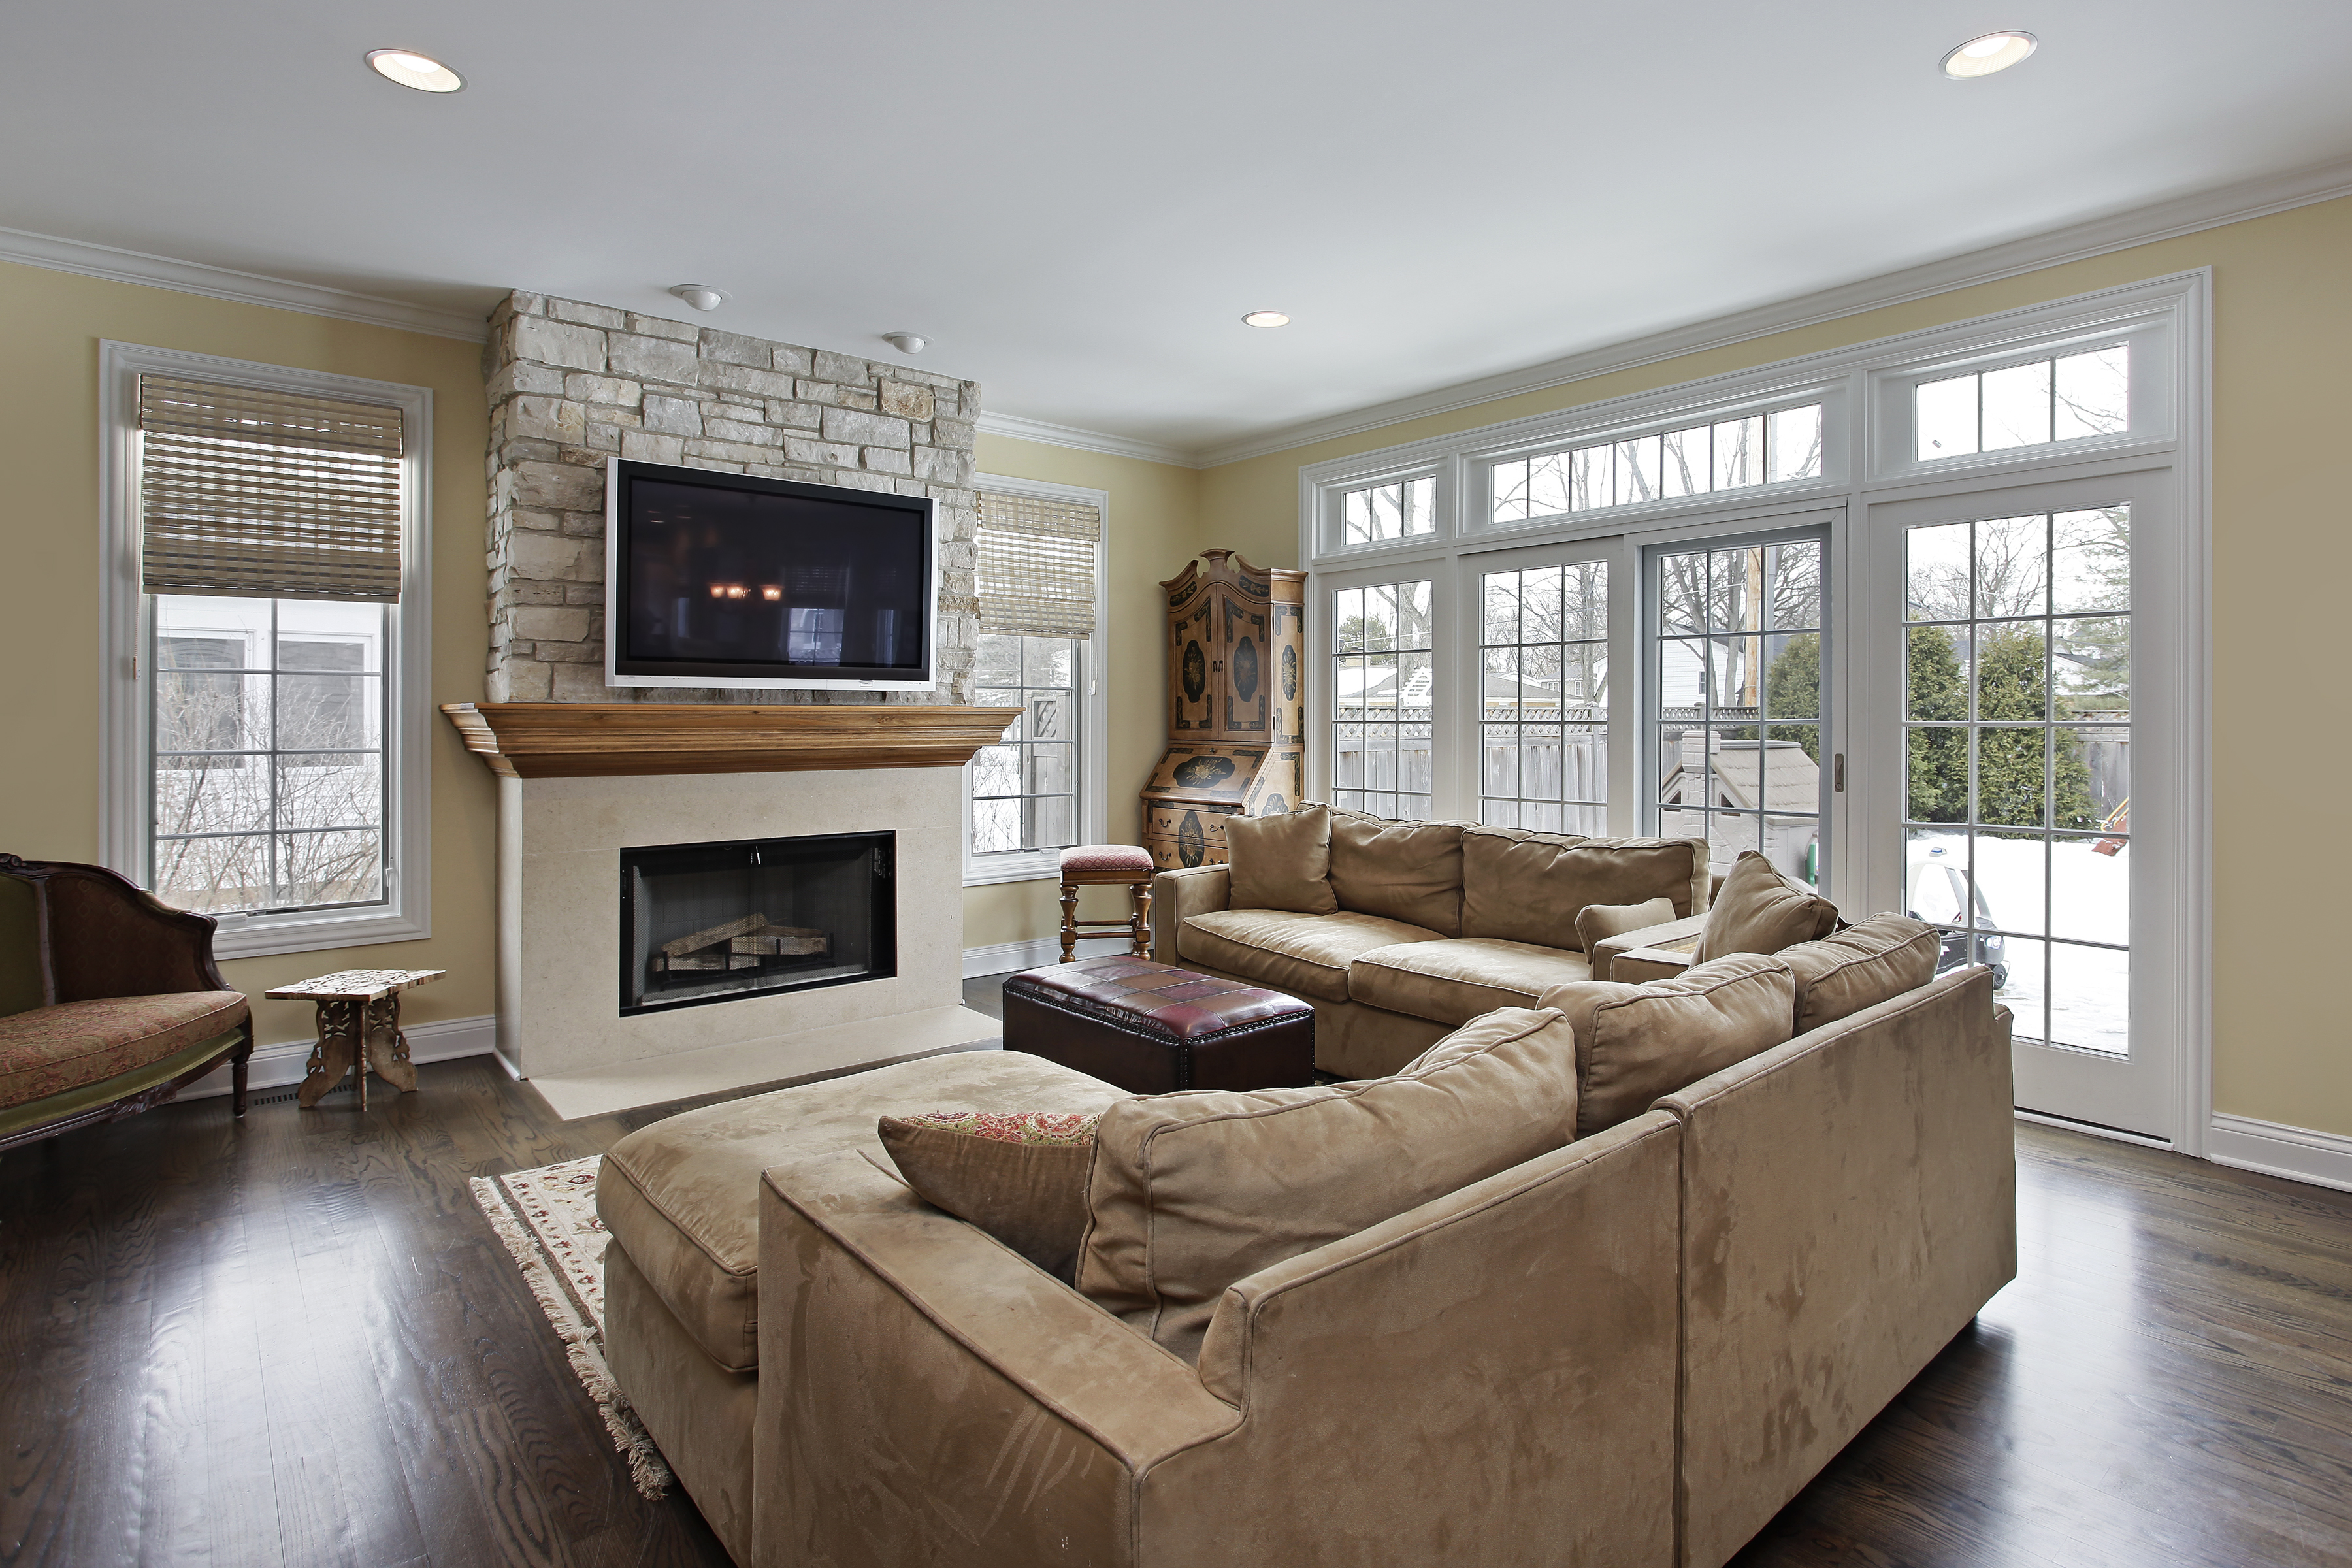 adhogg_builder_home_additions_family_room-7